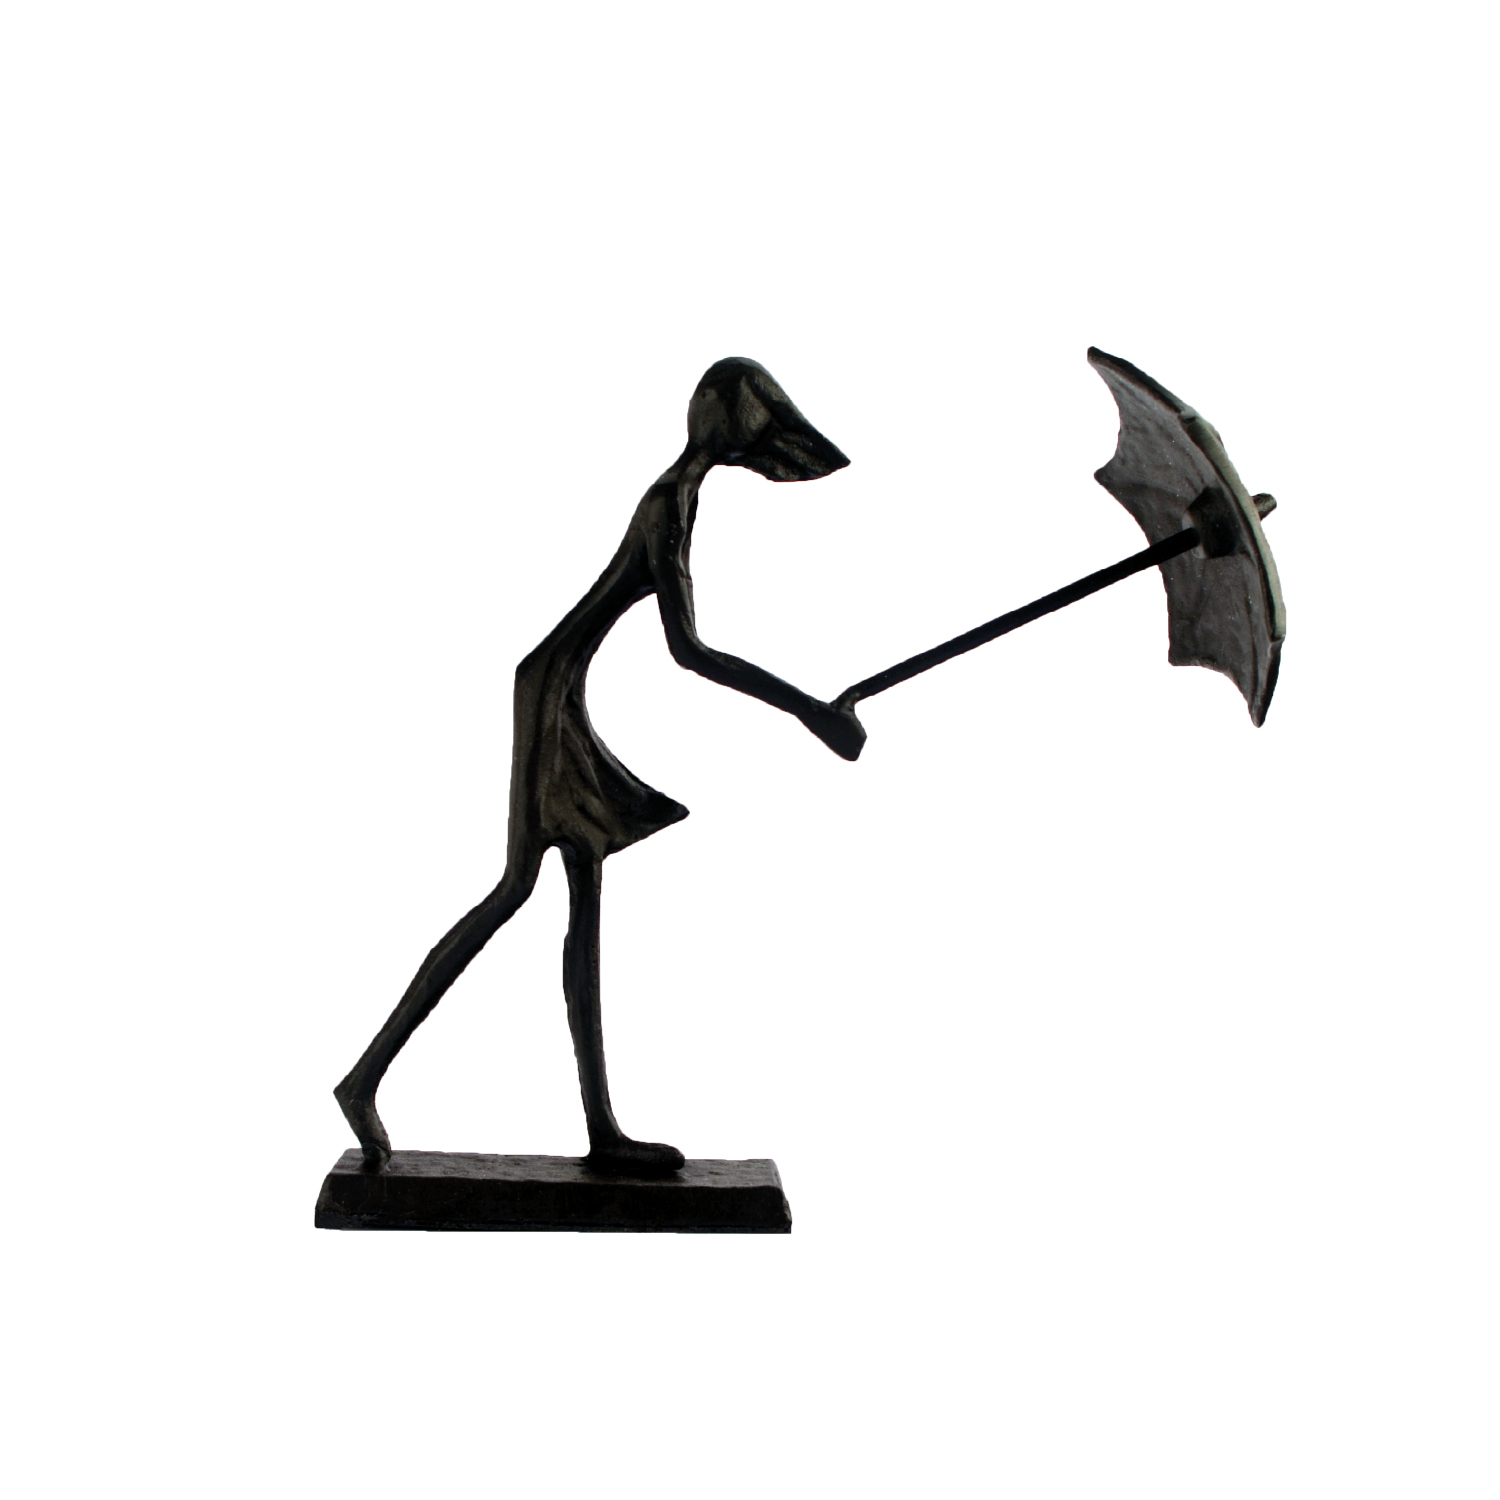 Elur Umbrella Girl In Wind Iron Status Figurine 15cm in Mocha Brown - Ruby's Garden Boutique